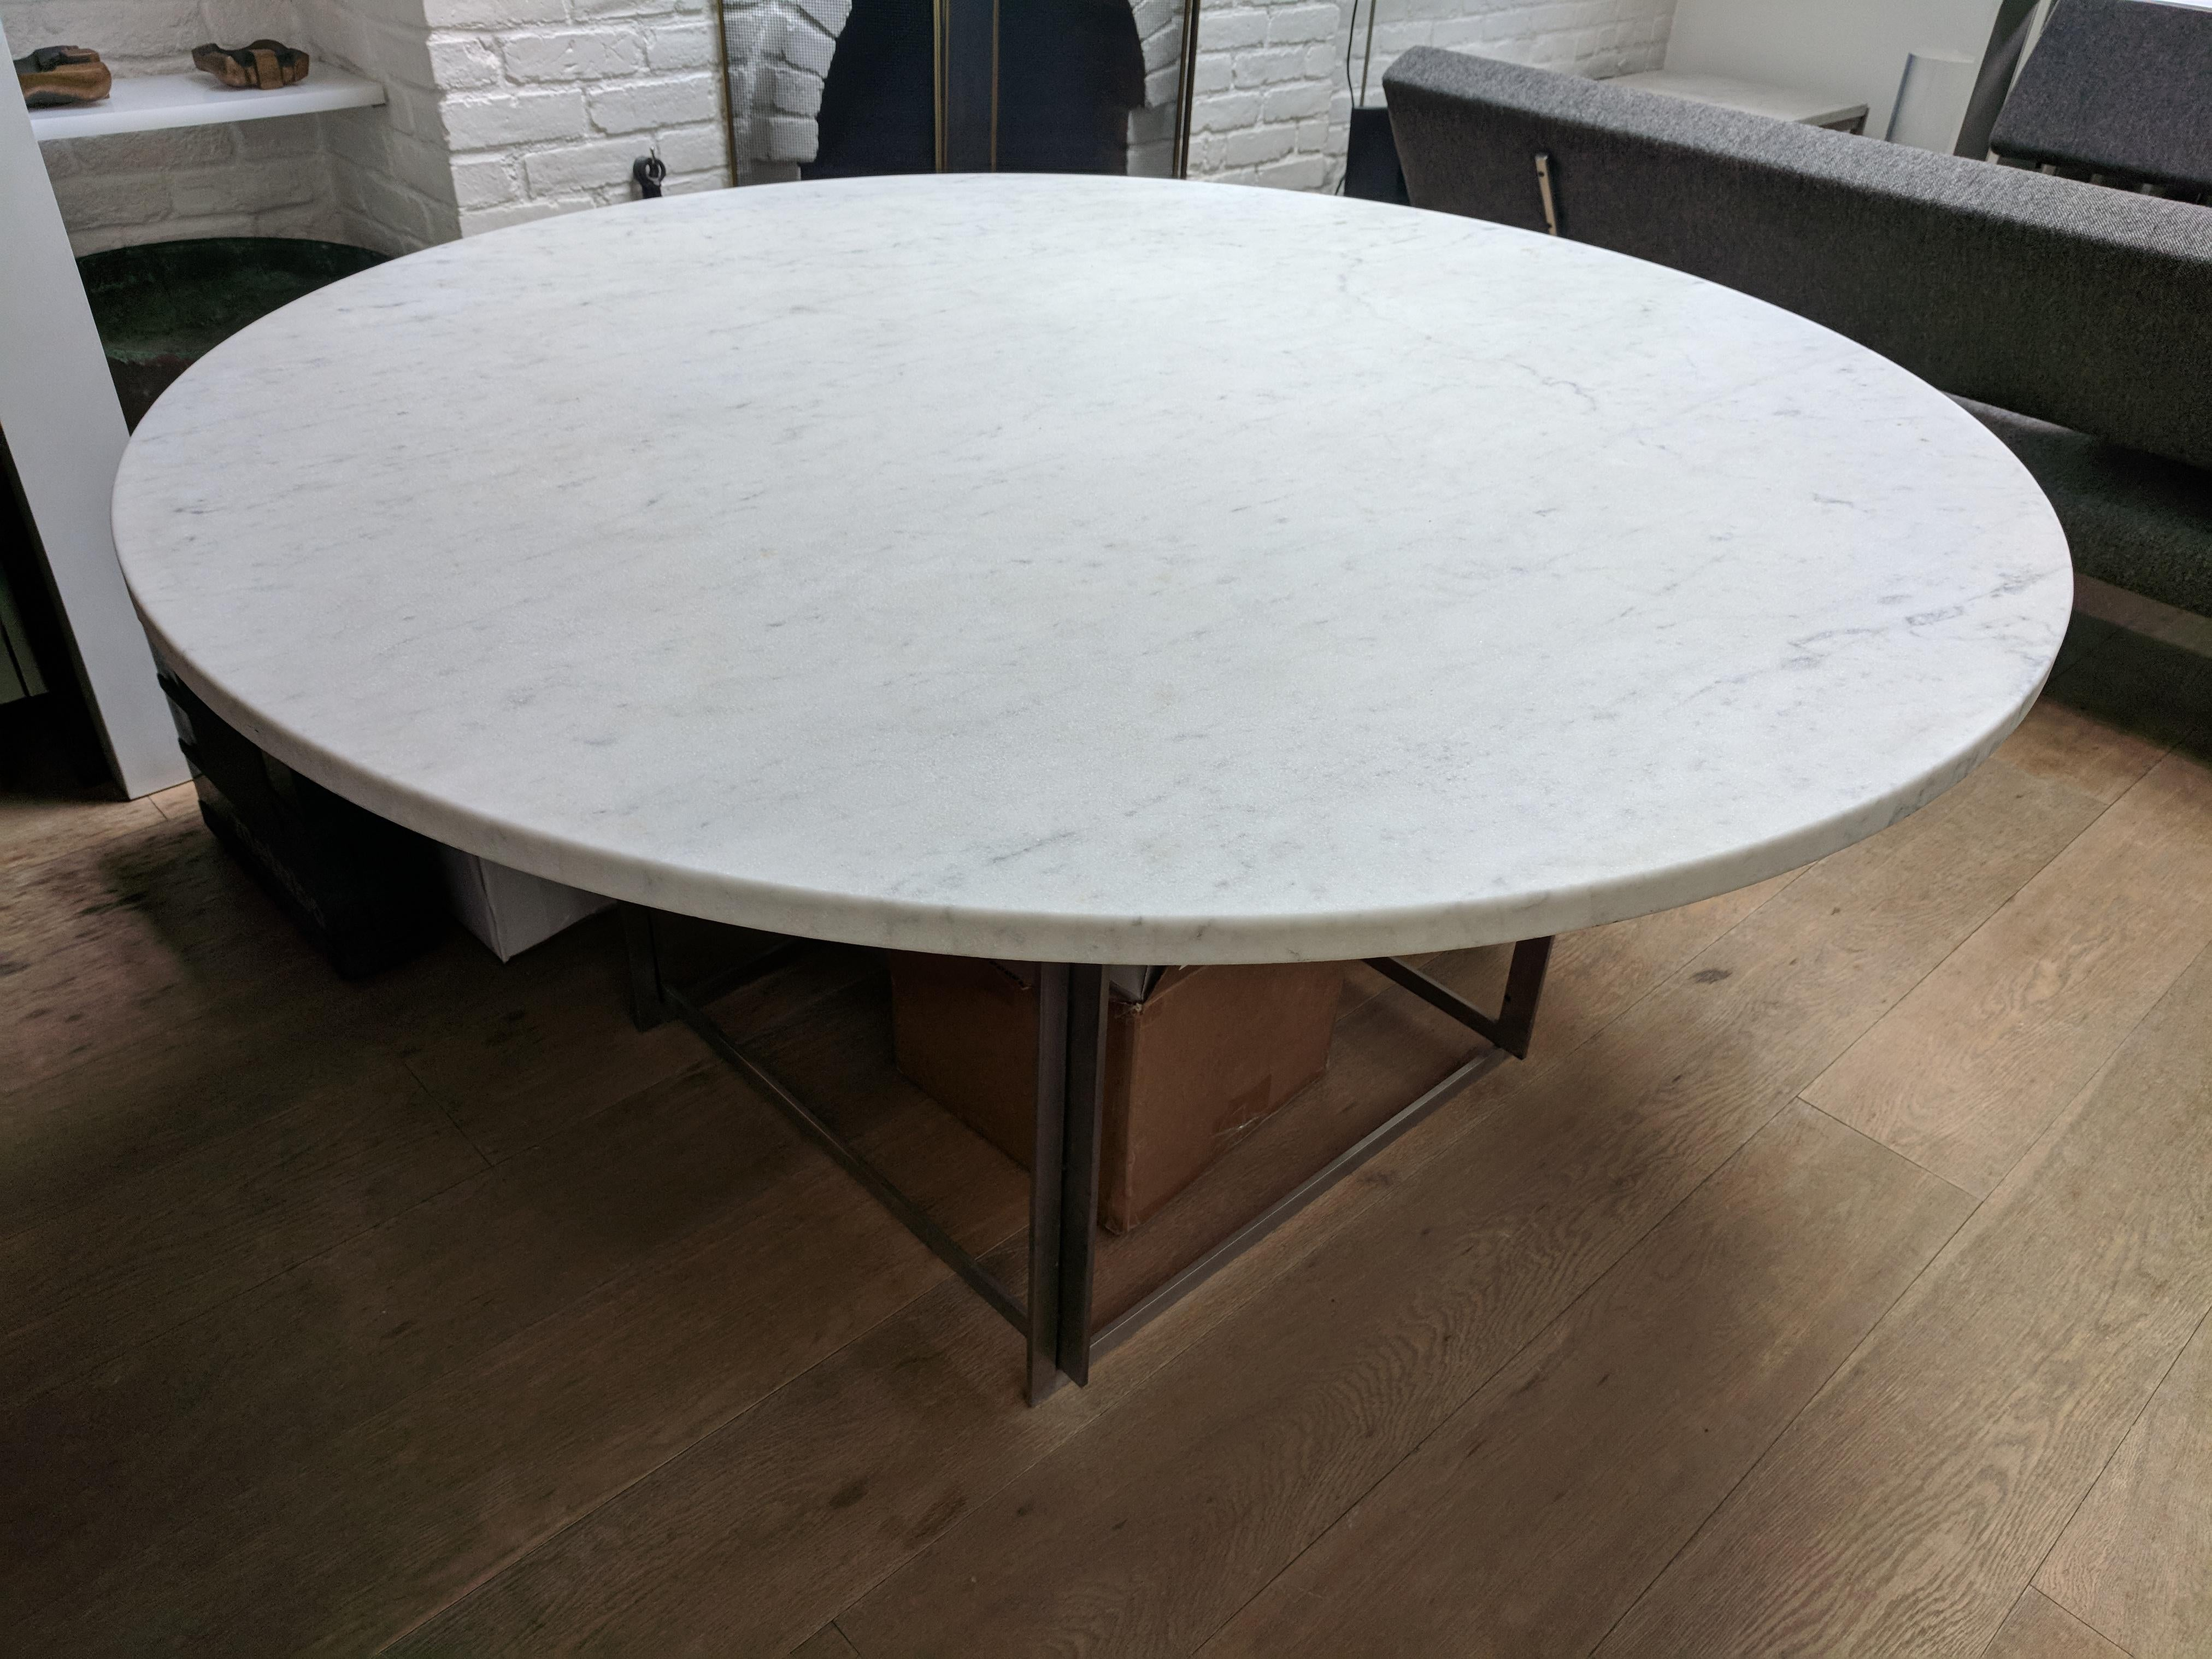 furniture poul kjaerholm pk54. Poul Kjaerholm PK54 Dining Table - Image 2 Of 3 Furniture Pk54